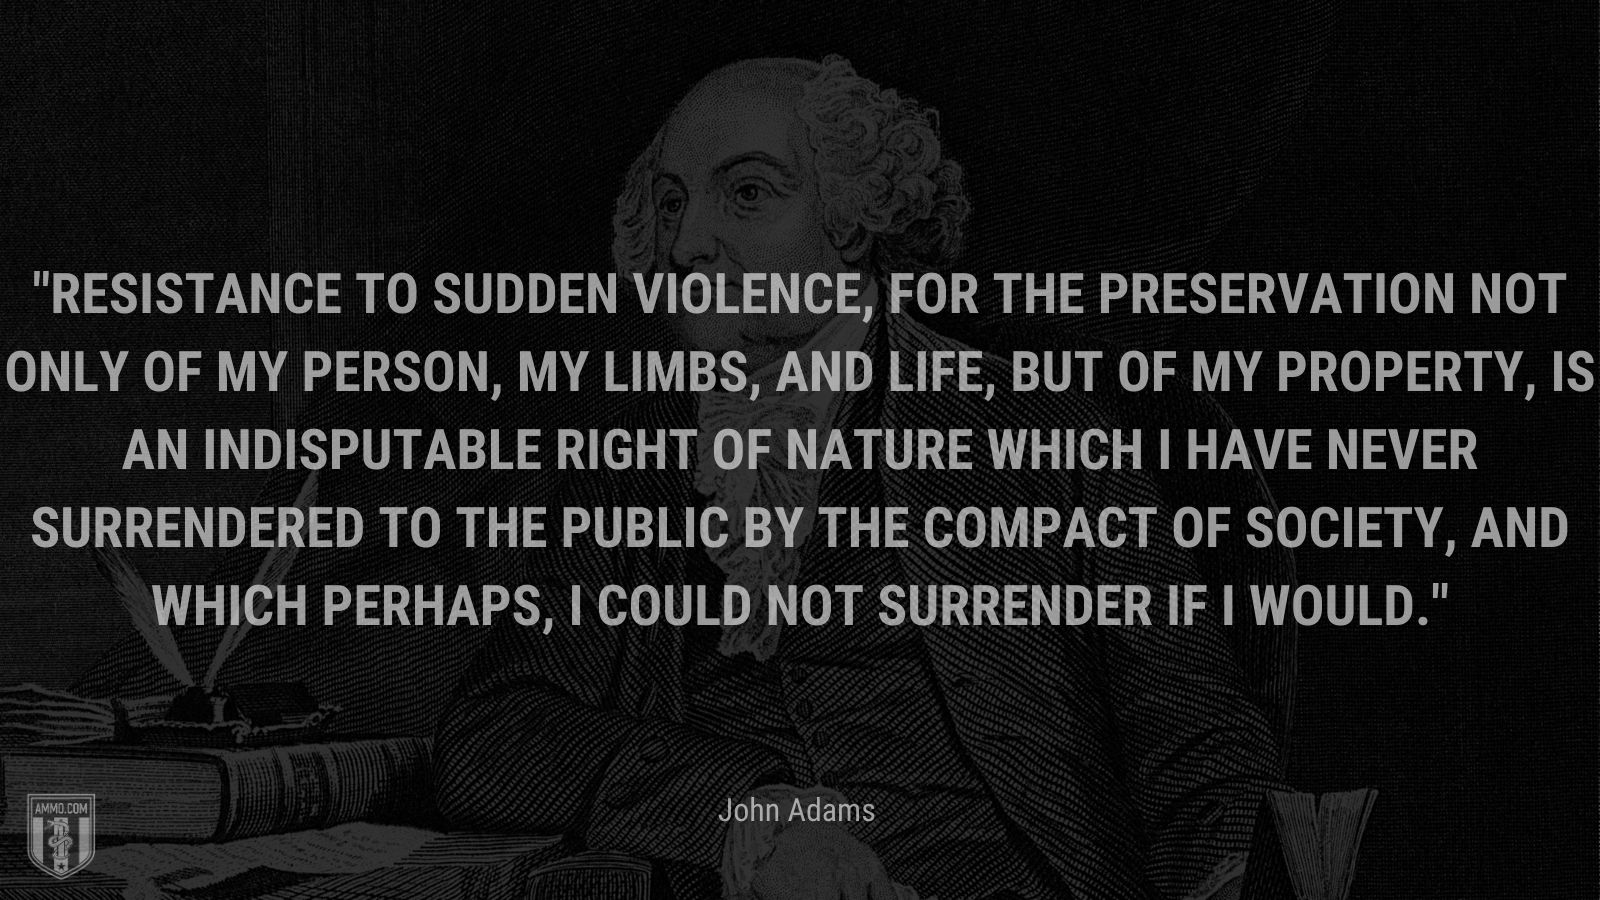 """""""Resistance to sudden violence, for the preservation not only of my person, my limbs, and life, but of my property, is an indisputable right of nature which I have never surrendered to the public by the compact of society, and which perhaps, I could not surrender if I would."""" - John Adams"""